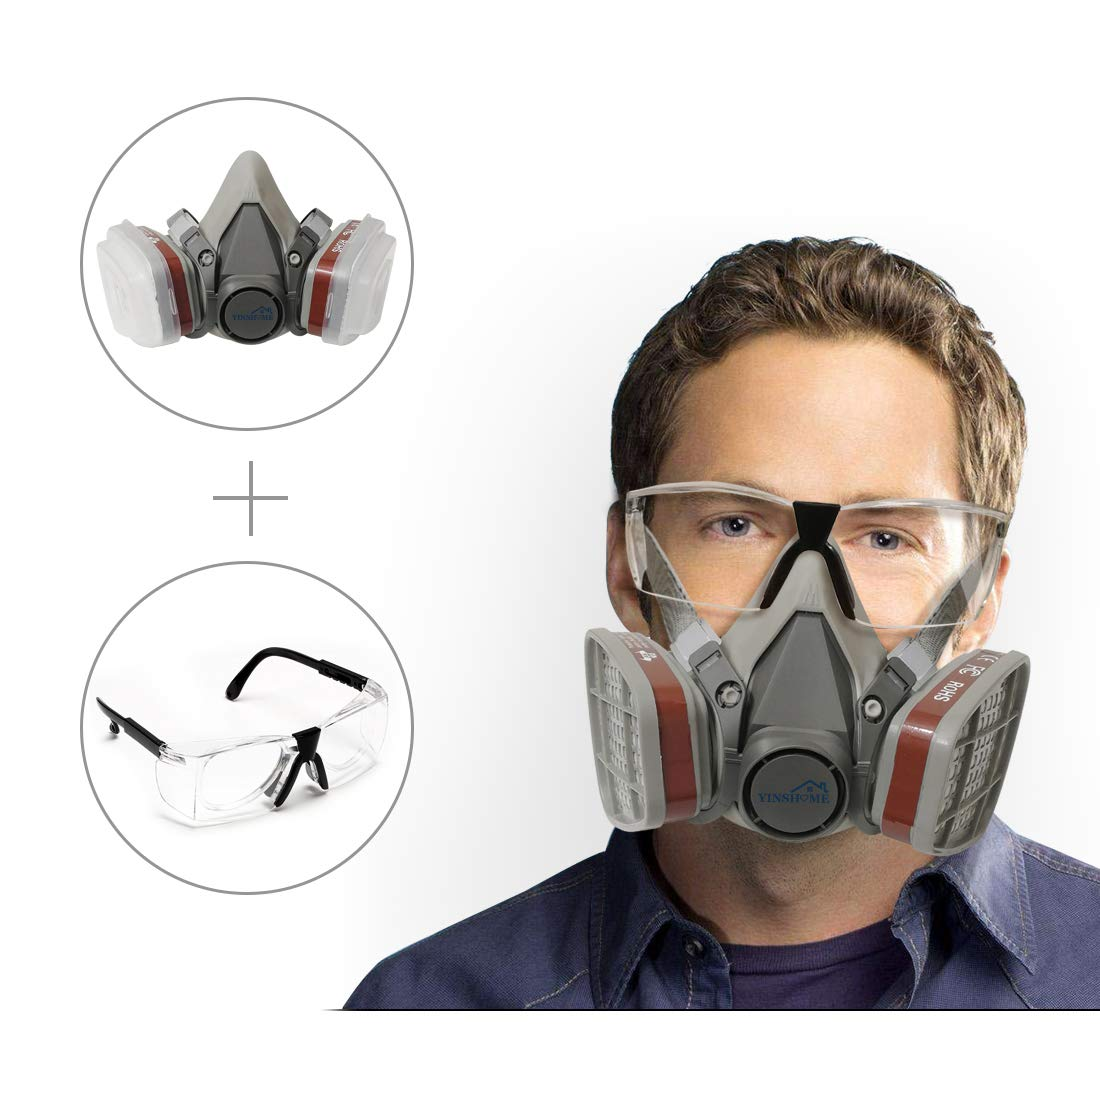 Yinshome Respirator Mask(Plus Safety Glasses)-Gas Mask with Dual Filter Cartridges for Breathing Eye Protection Against Dust,Organic Vapors, Chemicals-Paint Respirator for DIY projects by YinsHome (Image #1)